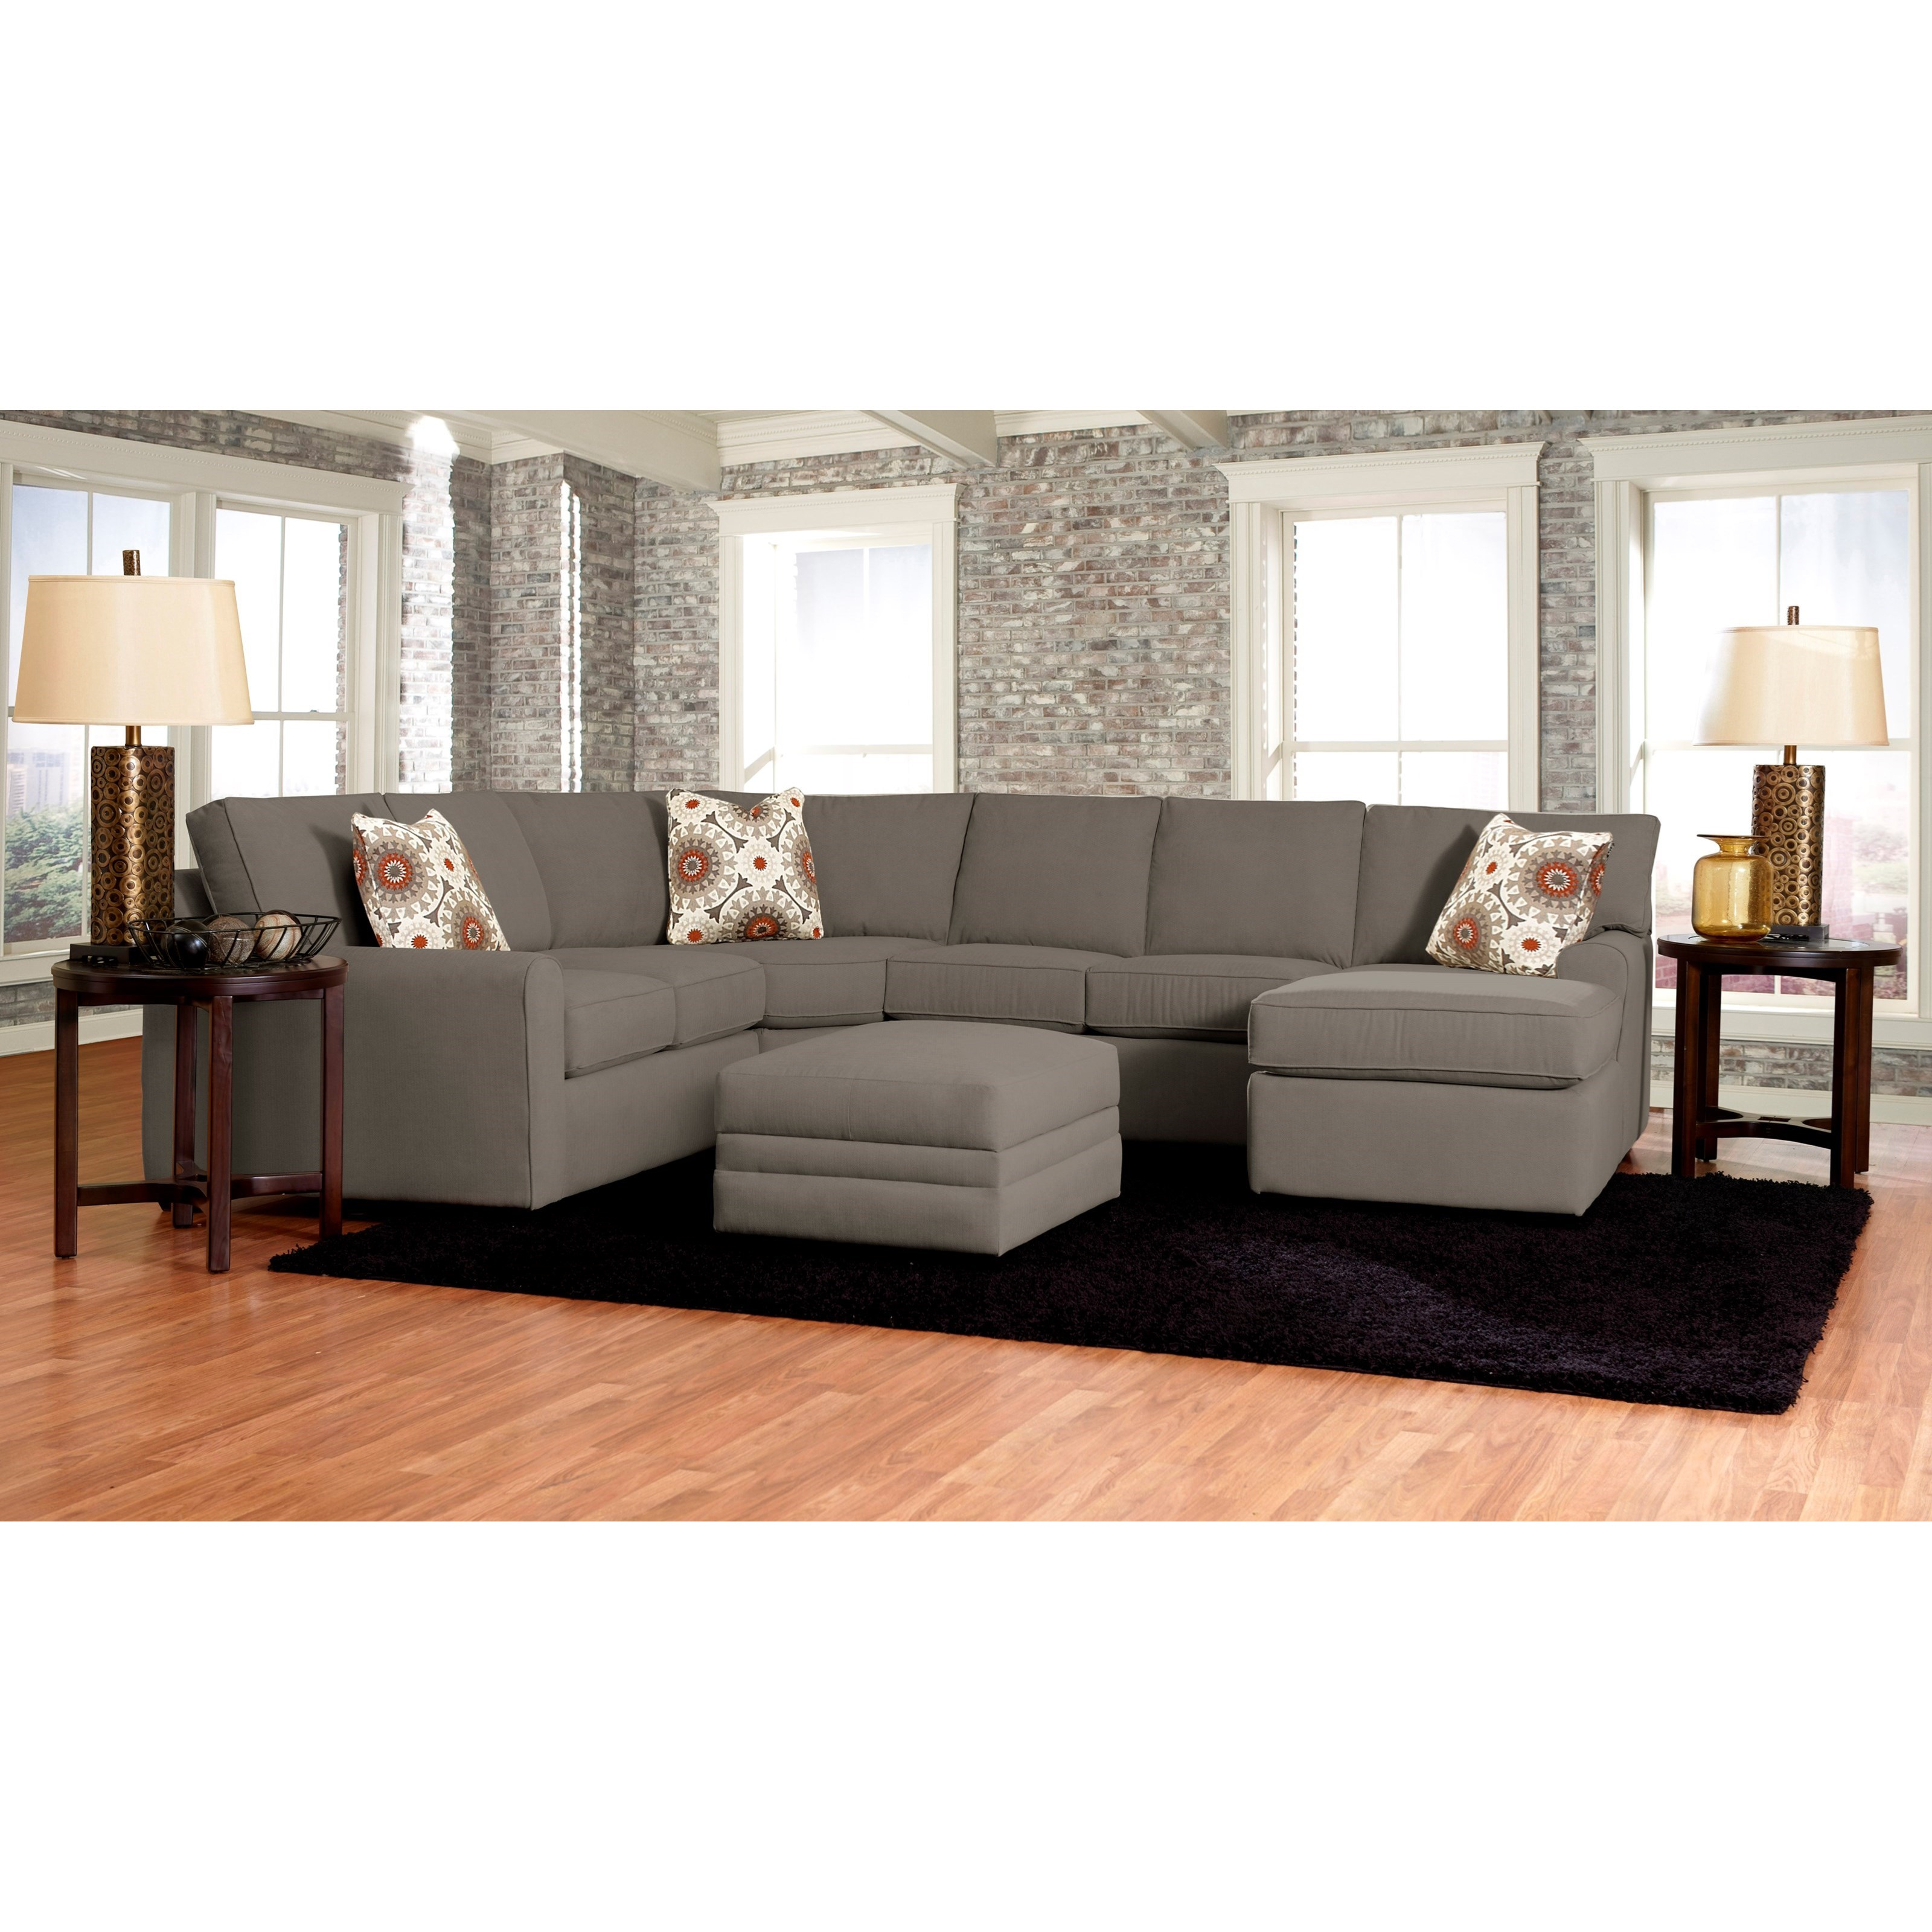 Klaussner Leather Sofa Review: Klaussner Hybrid Four Piece Sectional Sofa With Right